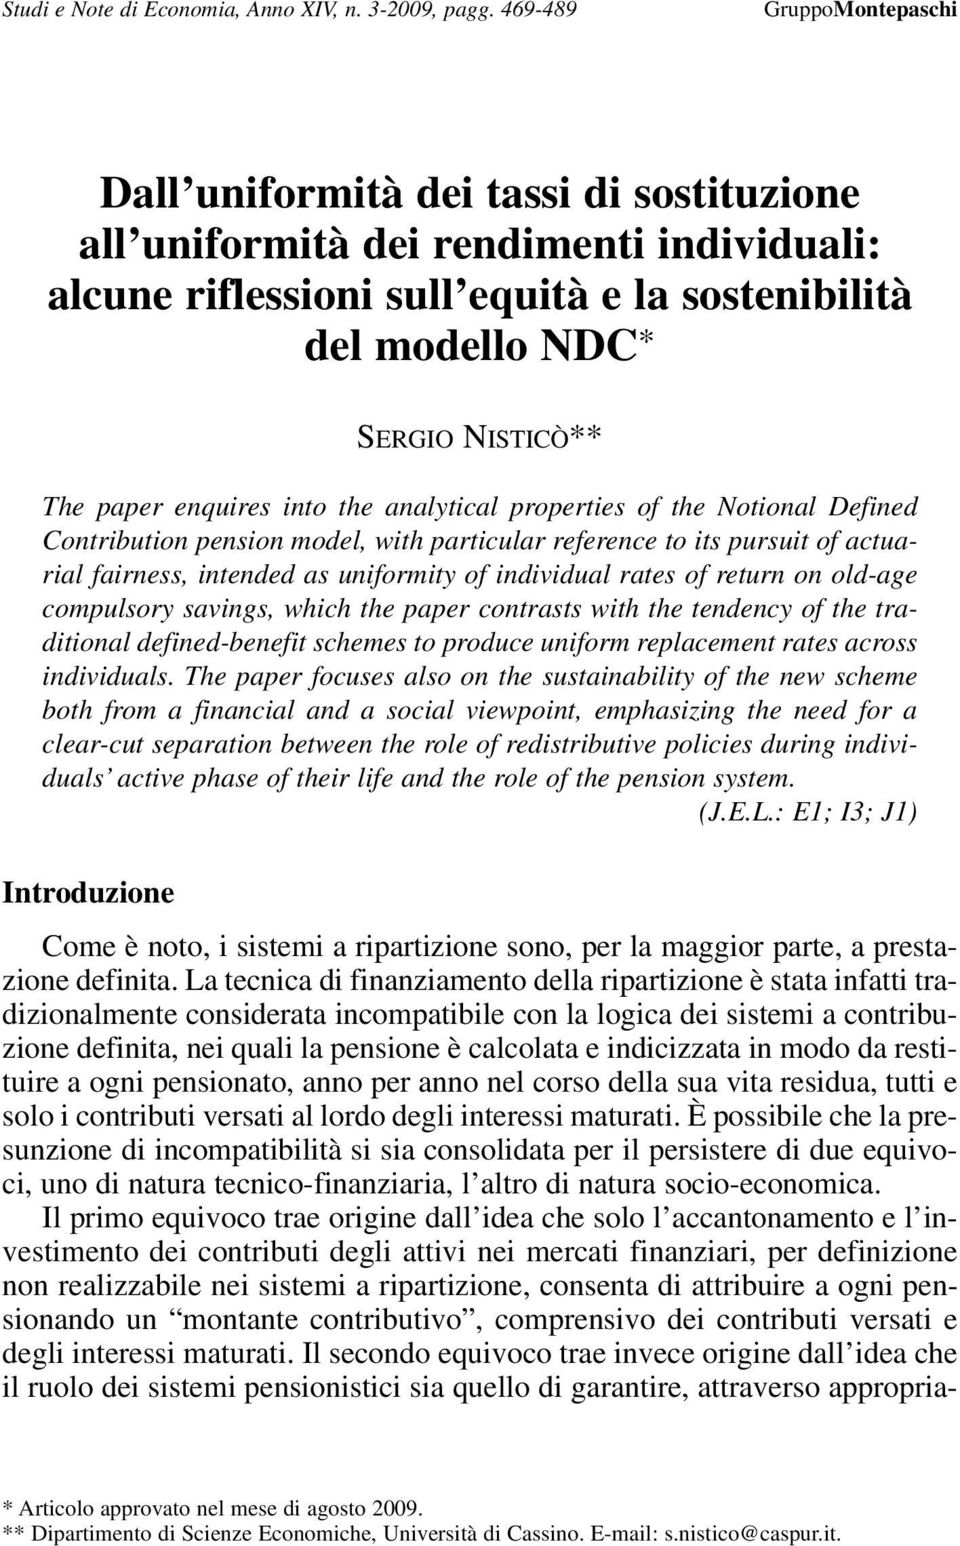 paper enquires into the analytical properties of the Notional Defined Contribution pension model, with particular reference to its pursuit of actuarial fairness, intended as uniformity of individual